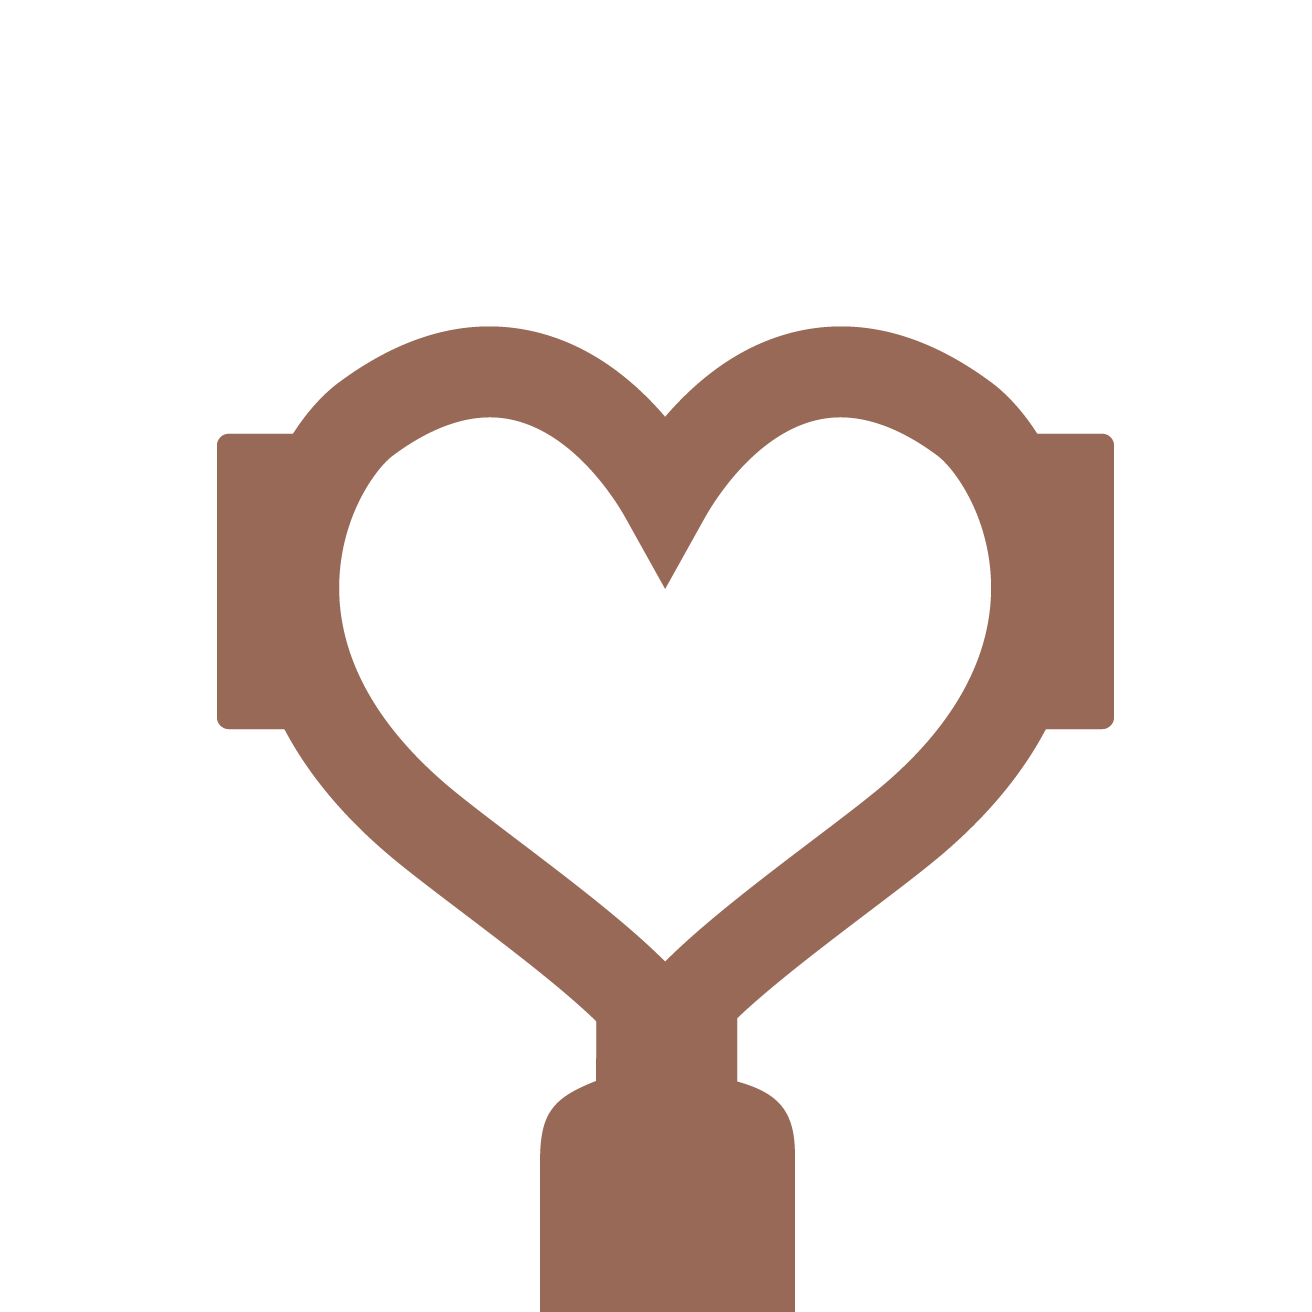 Ascaso Dream UK - WHITE, Exclusive to BellaBarista